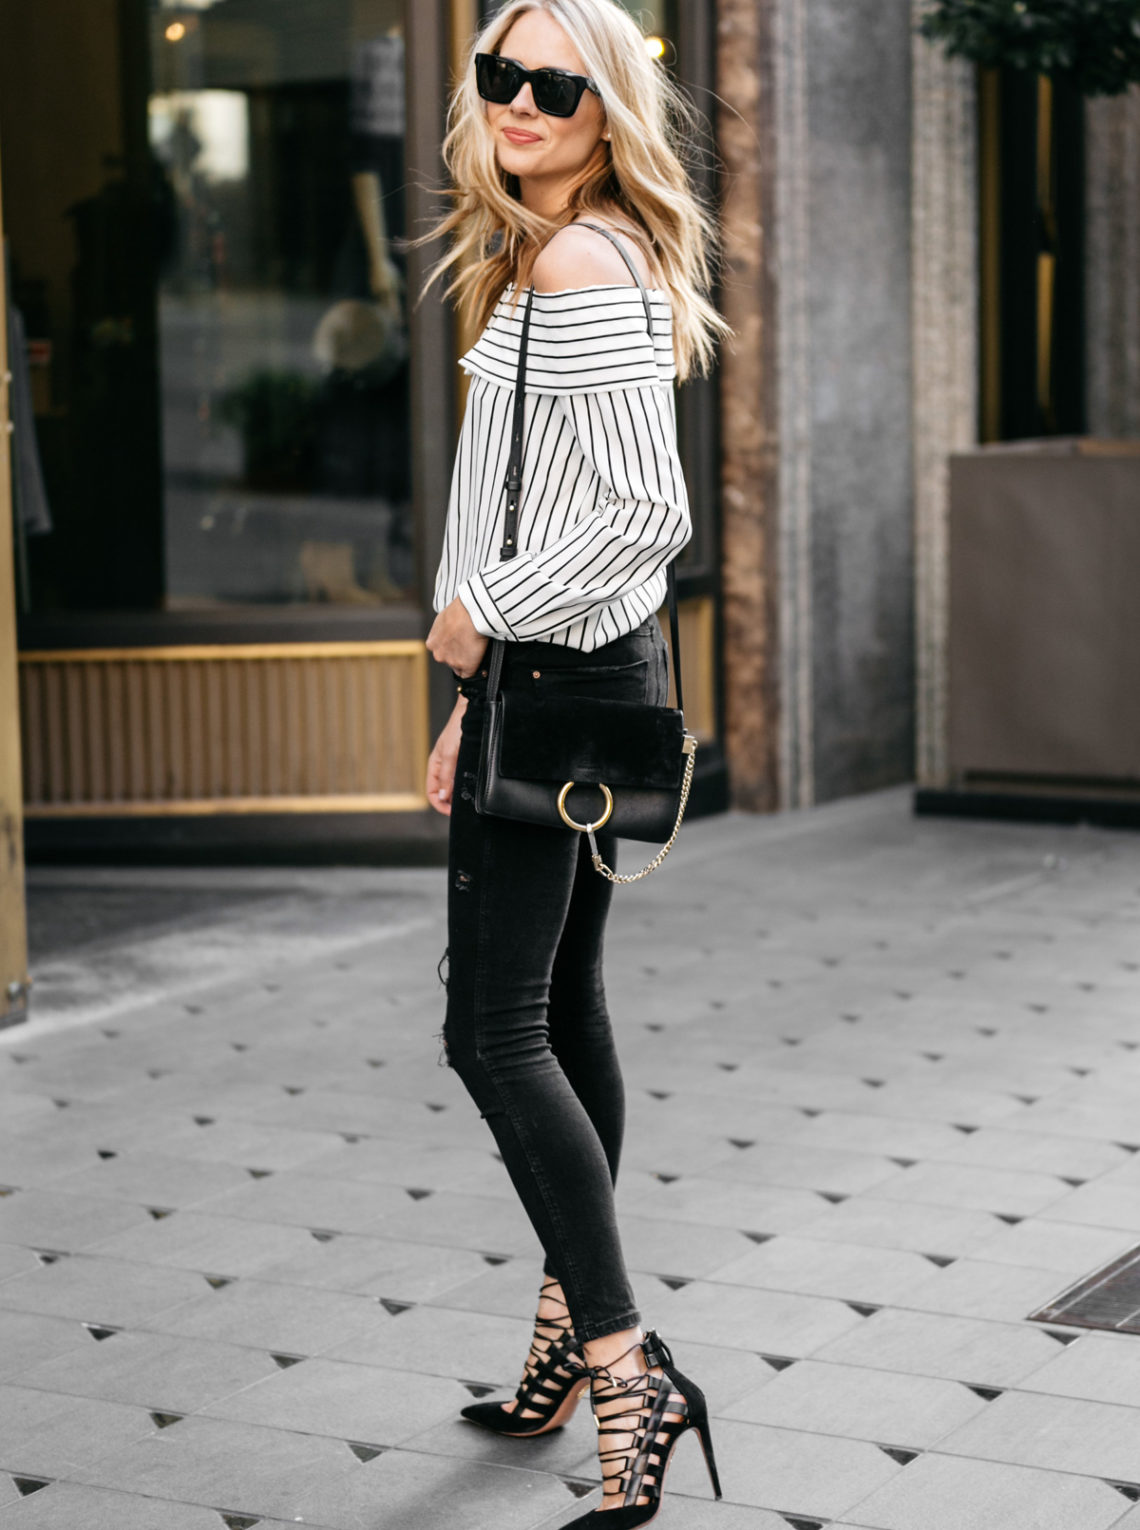 Fashion Jackson, Street Style, Off-the-Shoulder Striped Top, Black Ripped Skinny Jeans, Chloe Faye Handbag, Aquazzura Amazon Black Pumps